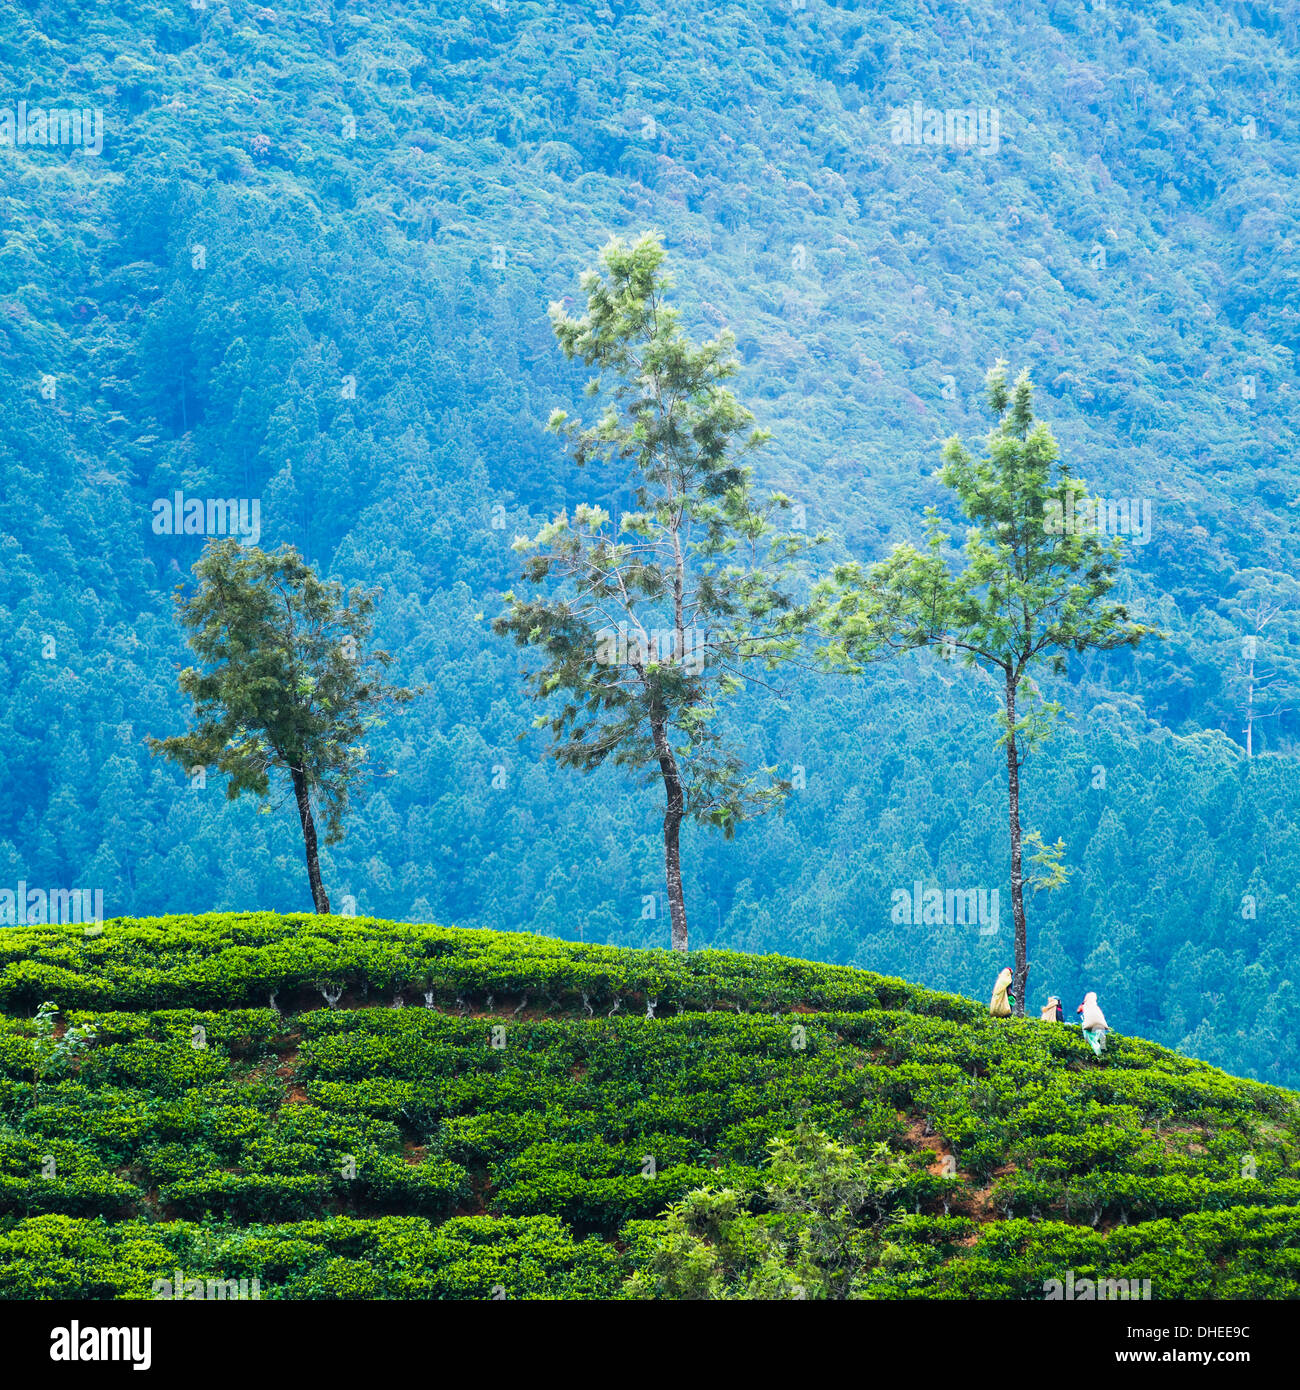 Tea pluckers working at a tea plantation in the the Central Highlands, Nuwara Eliya District, Sri Lanka, Asia - Stock Image